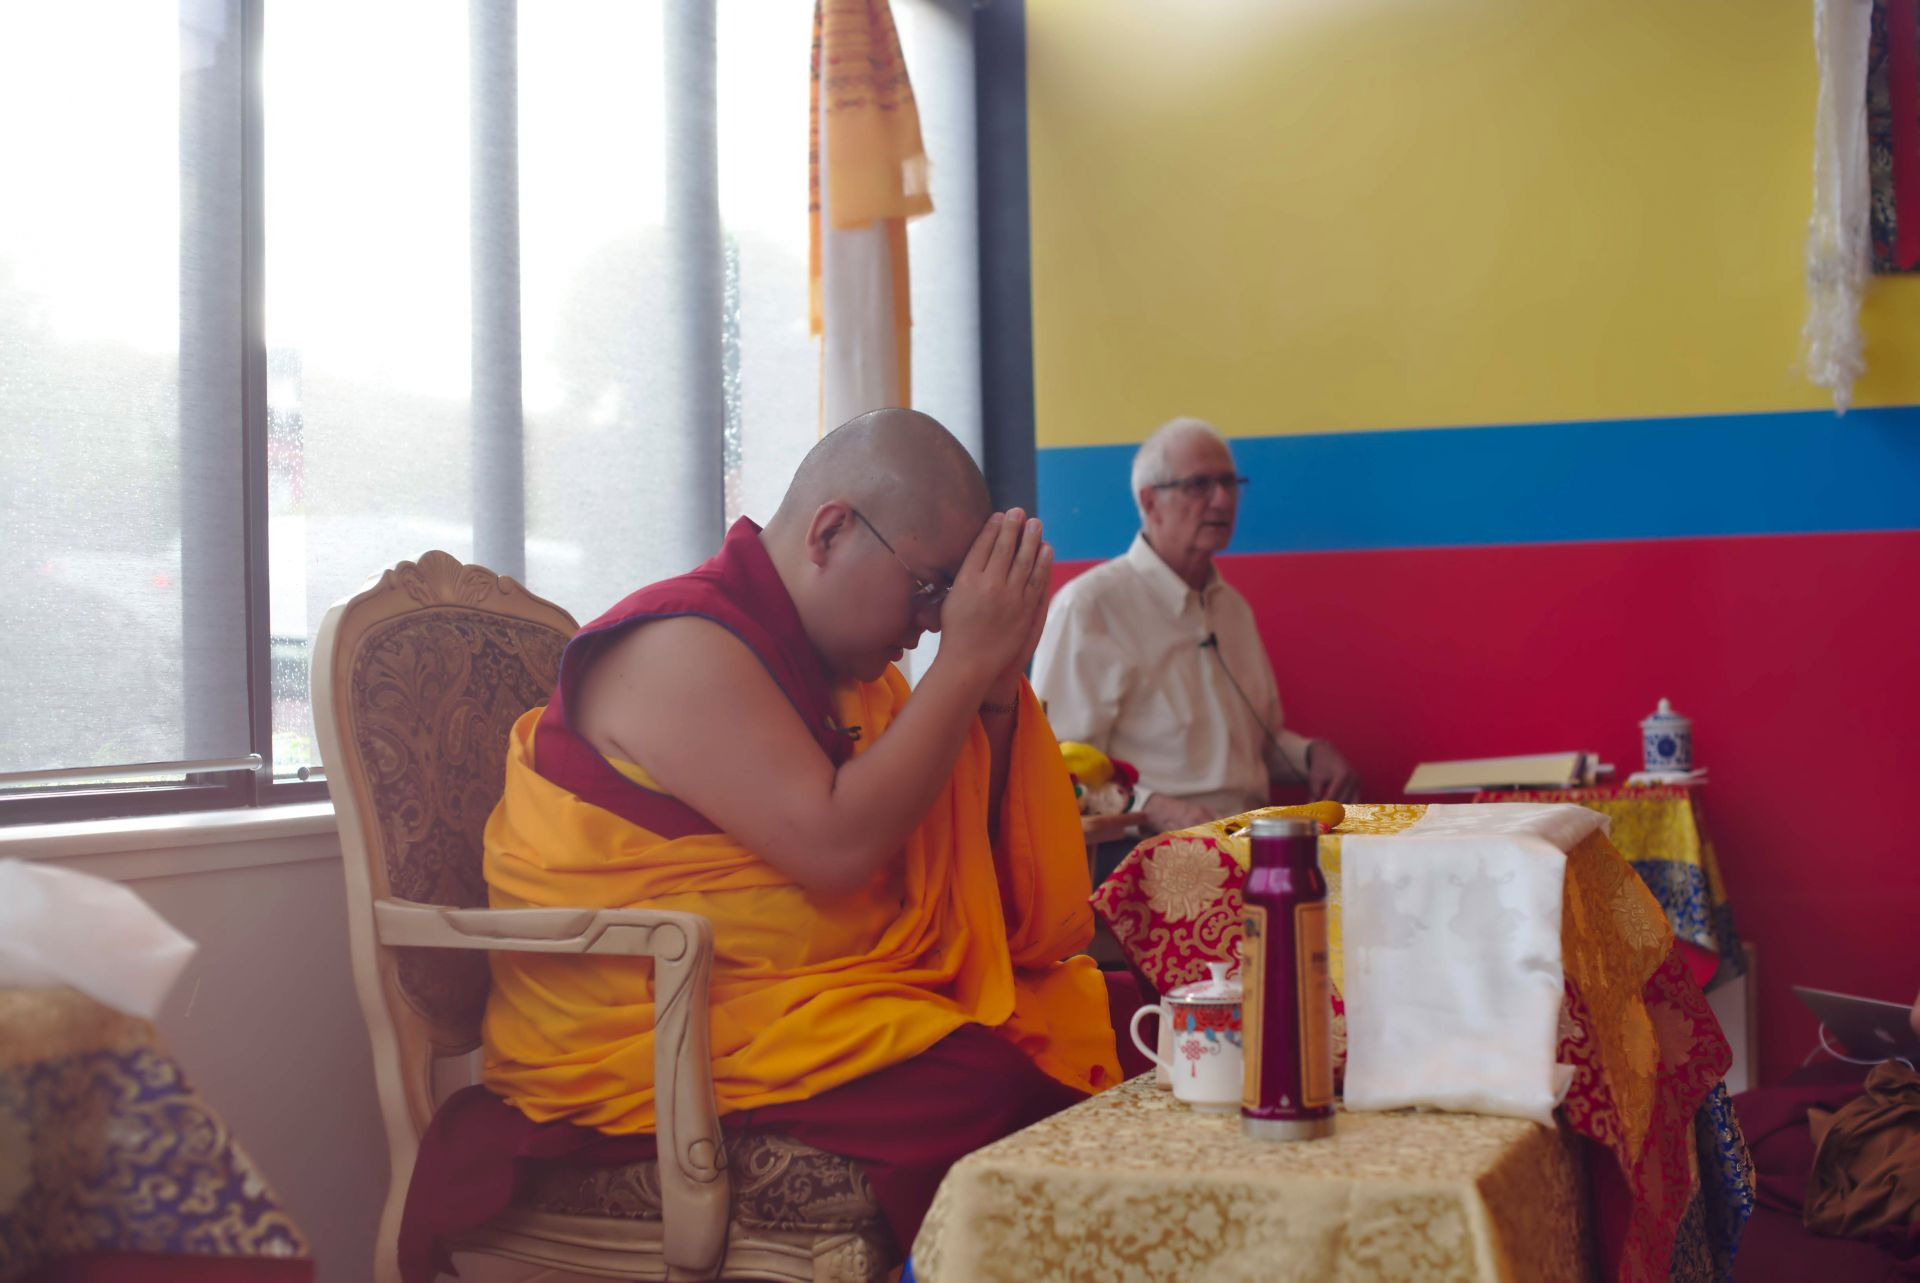 His Eminence Ling Rinpoche Welcomed to the Northeastern United States